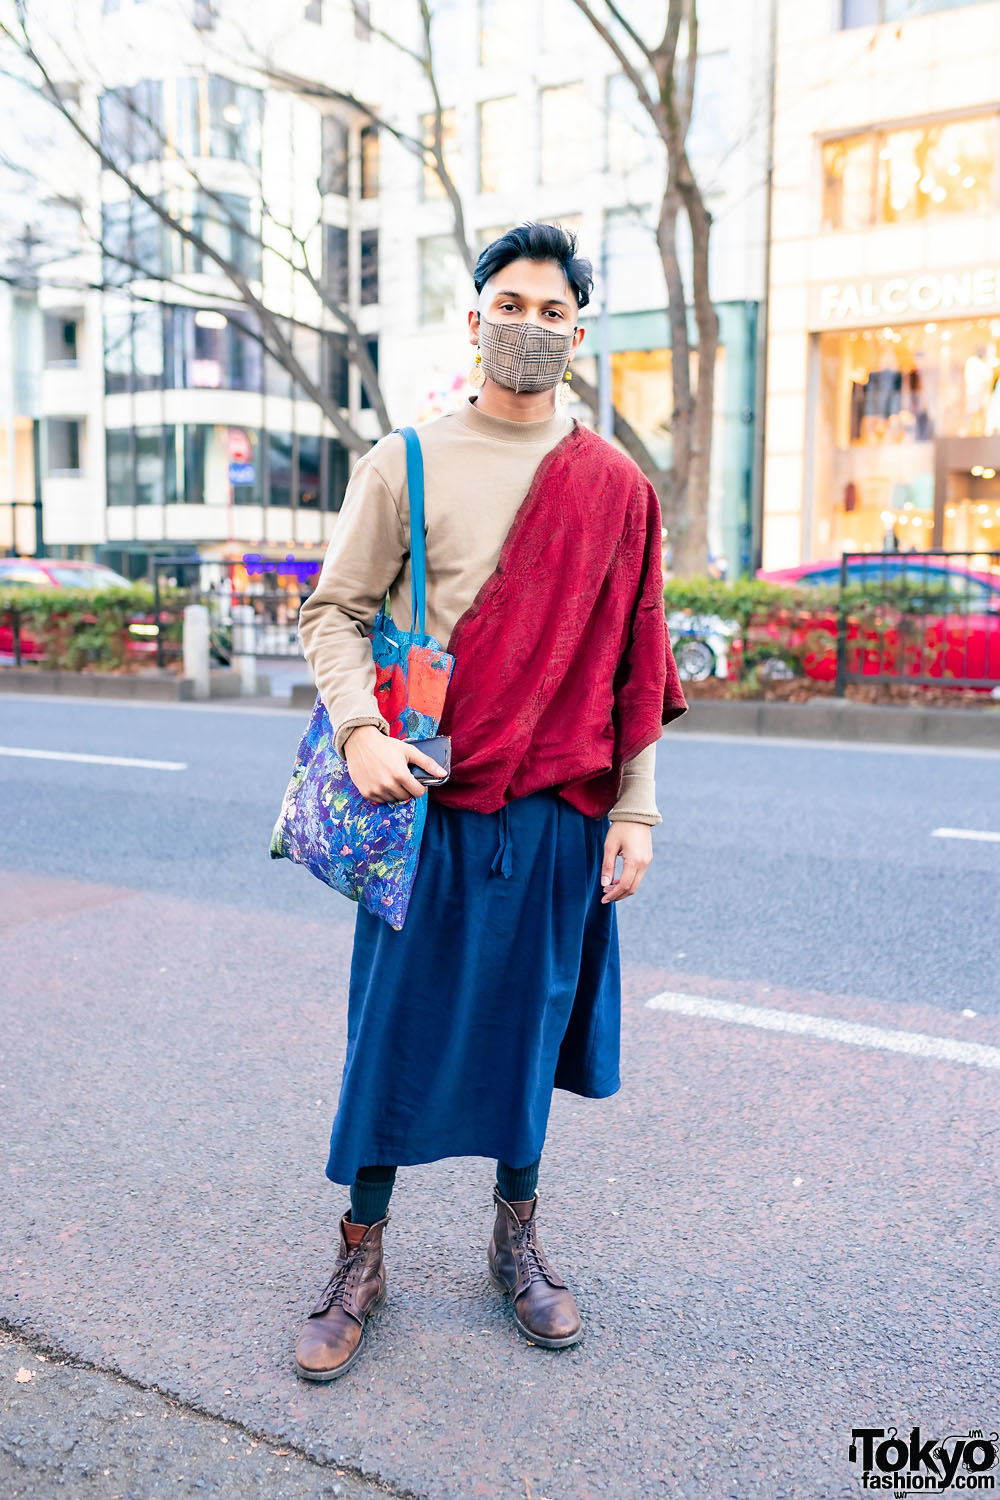 Tokyo Street Style w/ Plaid Mask, Shawl Over Sweater, Linen Skirt from Nepal, Painted Tote & Lace-Up Boots